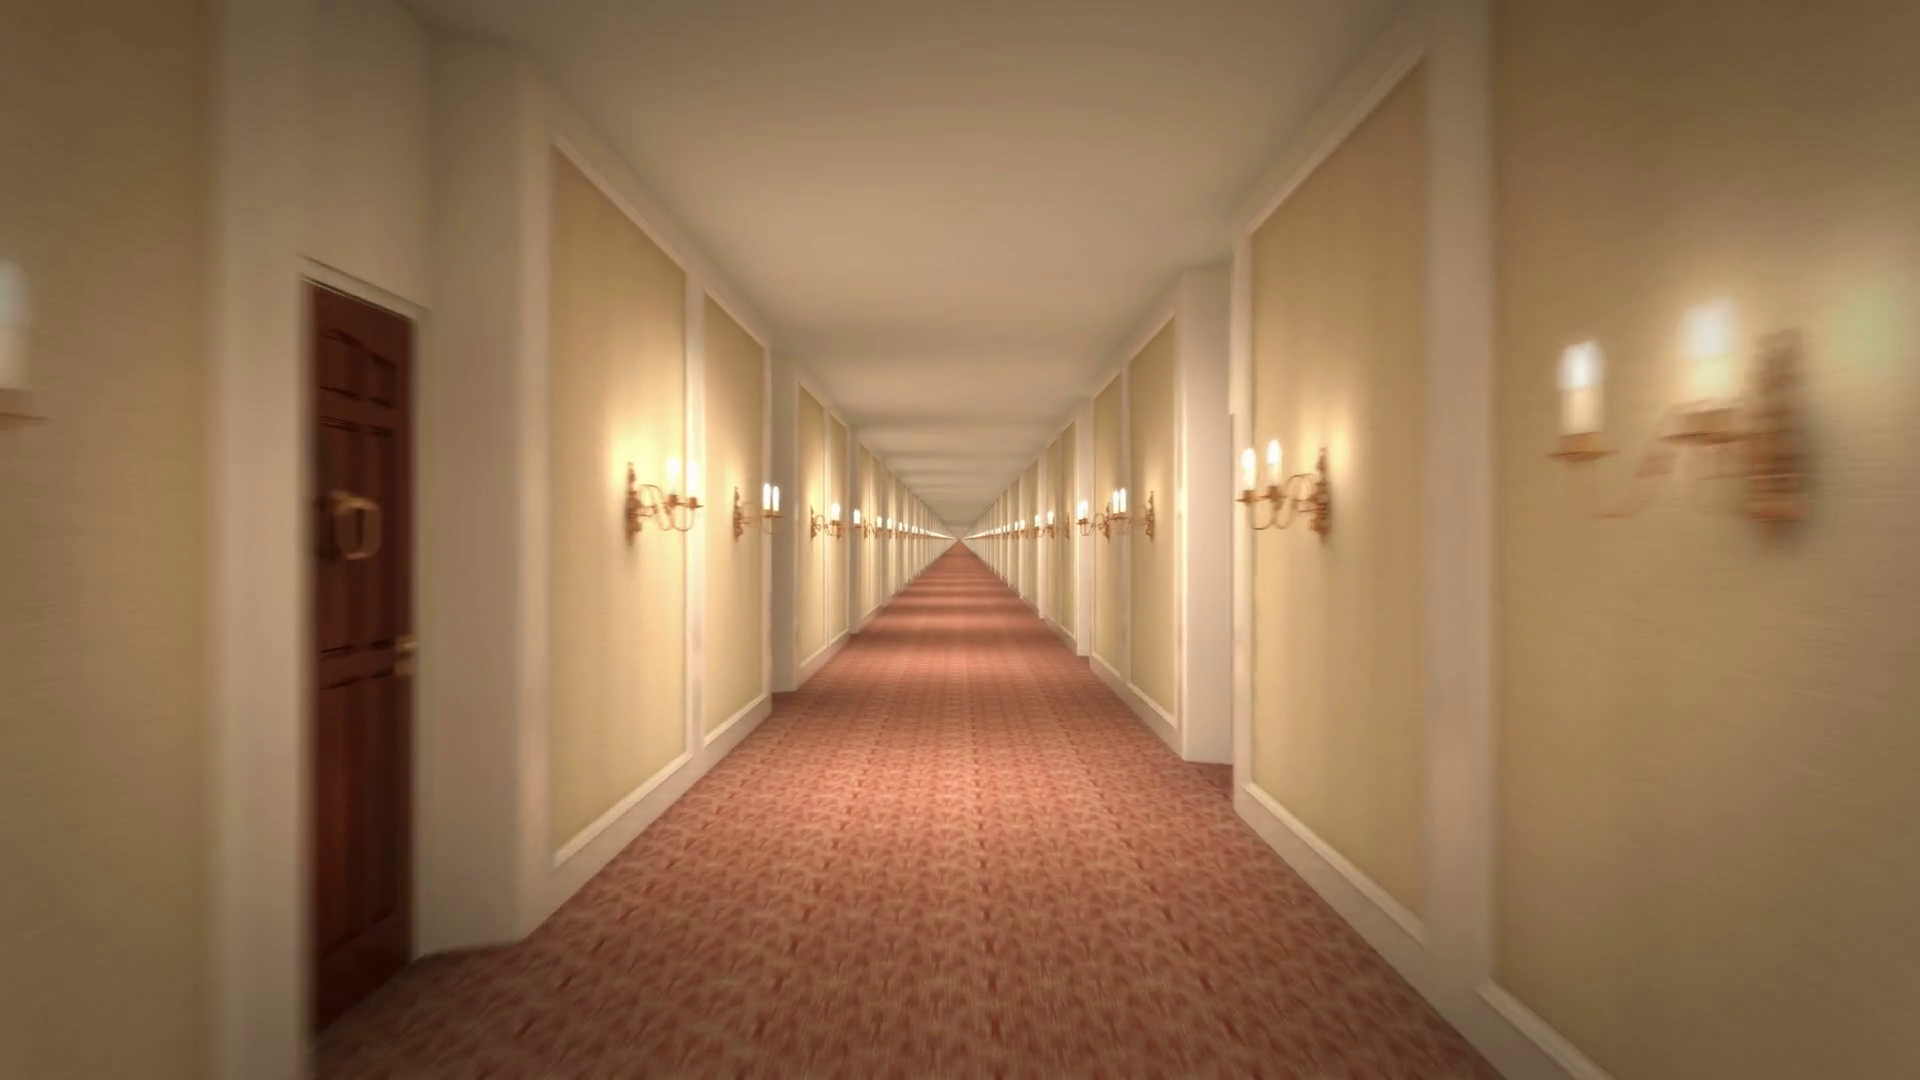 Endless Hotel Corridor 4k Loop Motion Background - Videoblocks